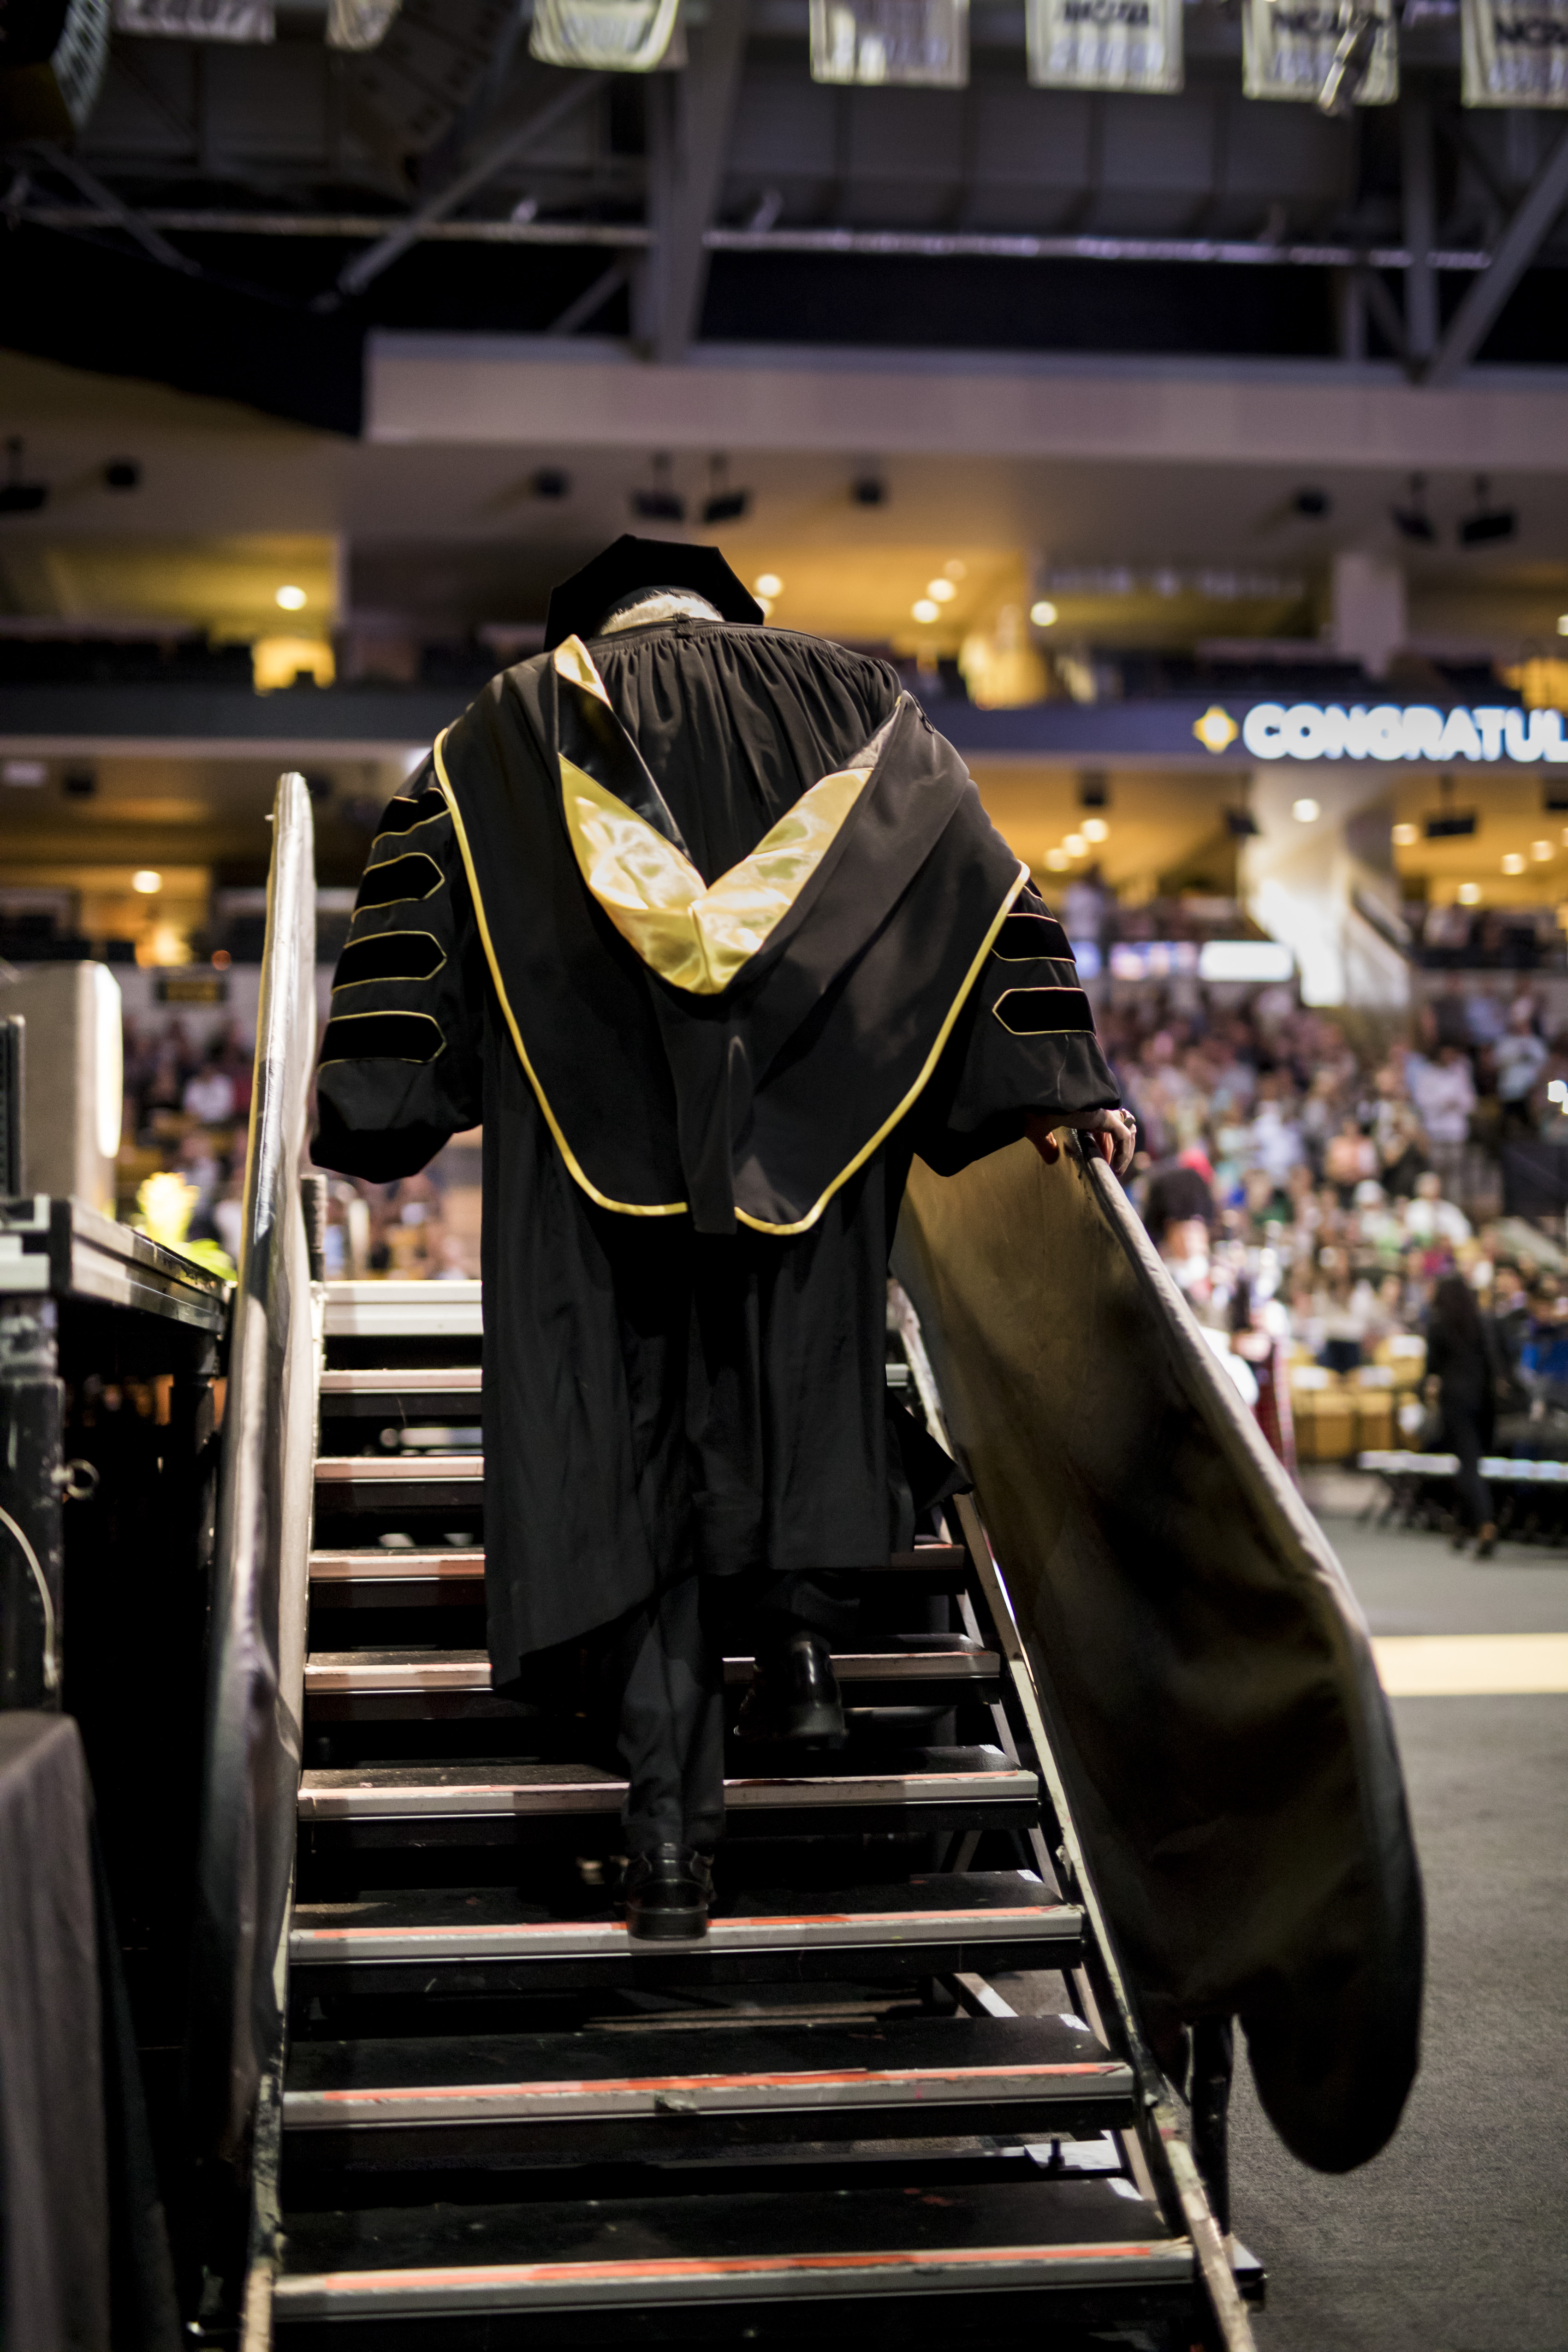 The back of John C. Hitt's gown displays black and gold as he walks up the steps to the CFE Arena stage.